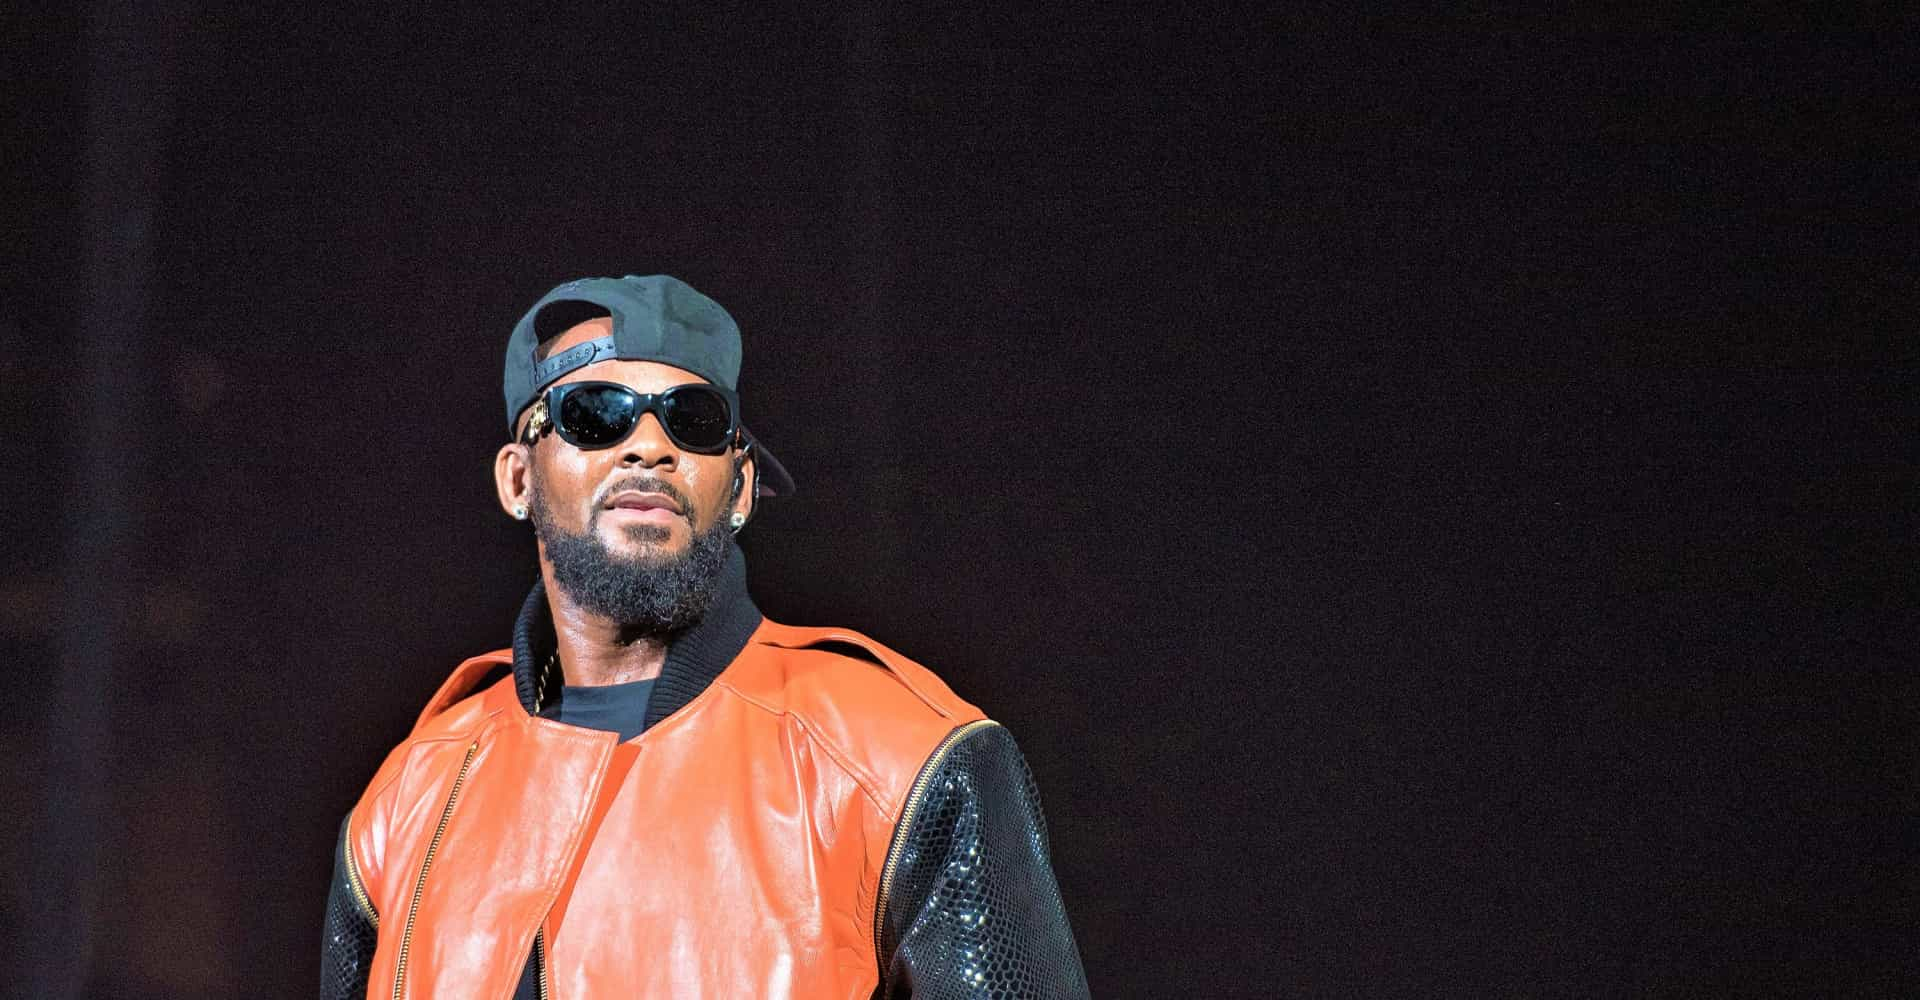 Meet the musicians who rejected R. Kelly